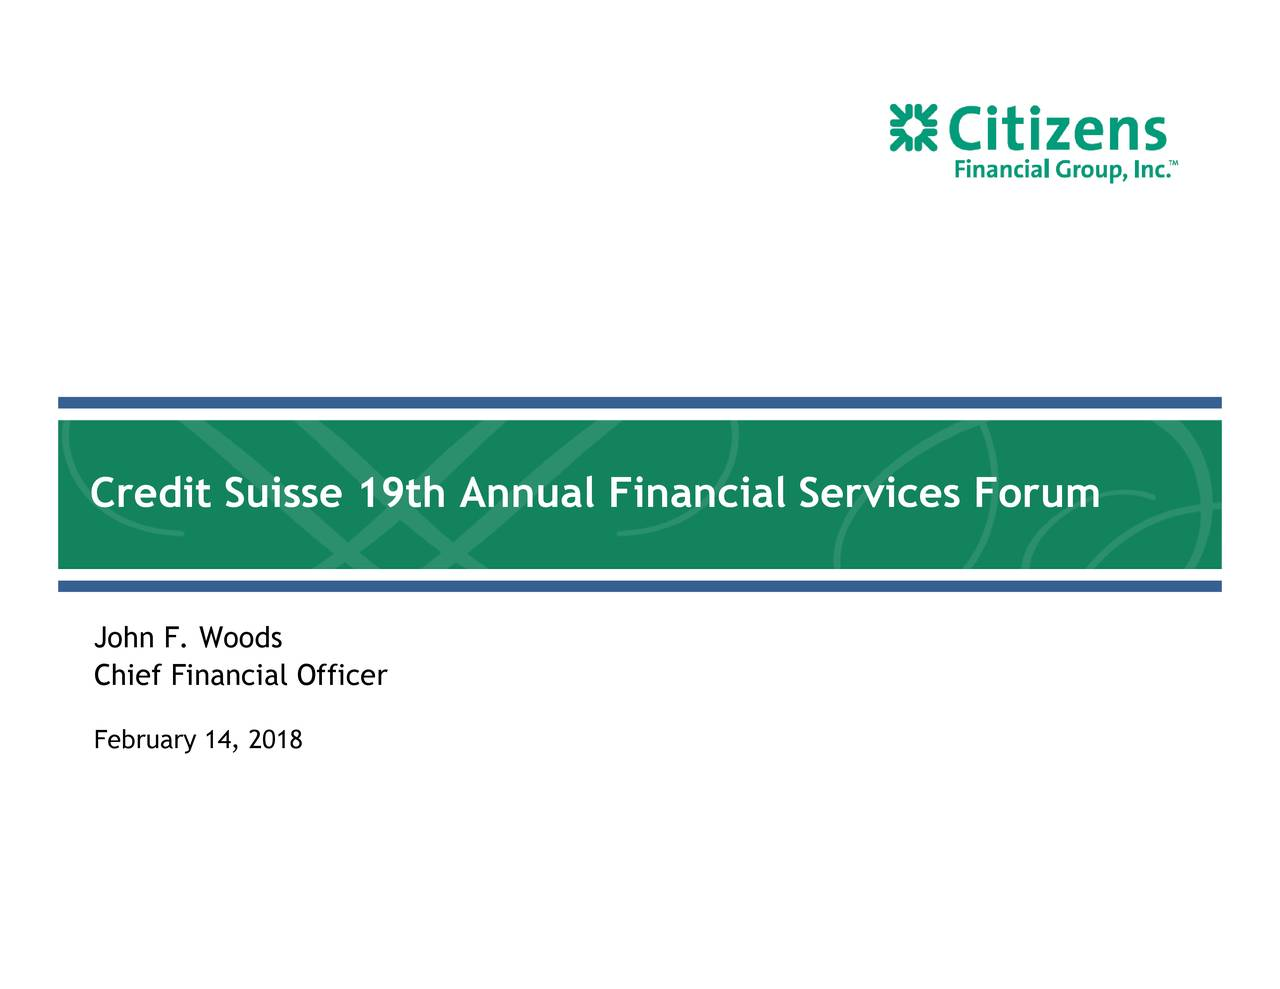 Citizens Financial (CFG) Presents At Credit Suisse 19th